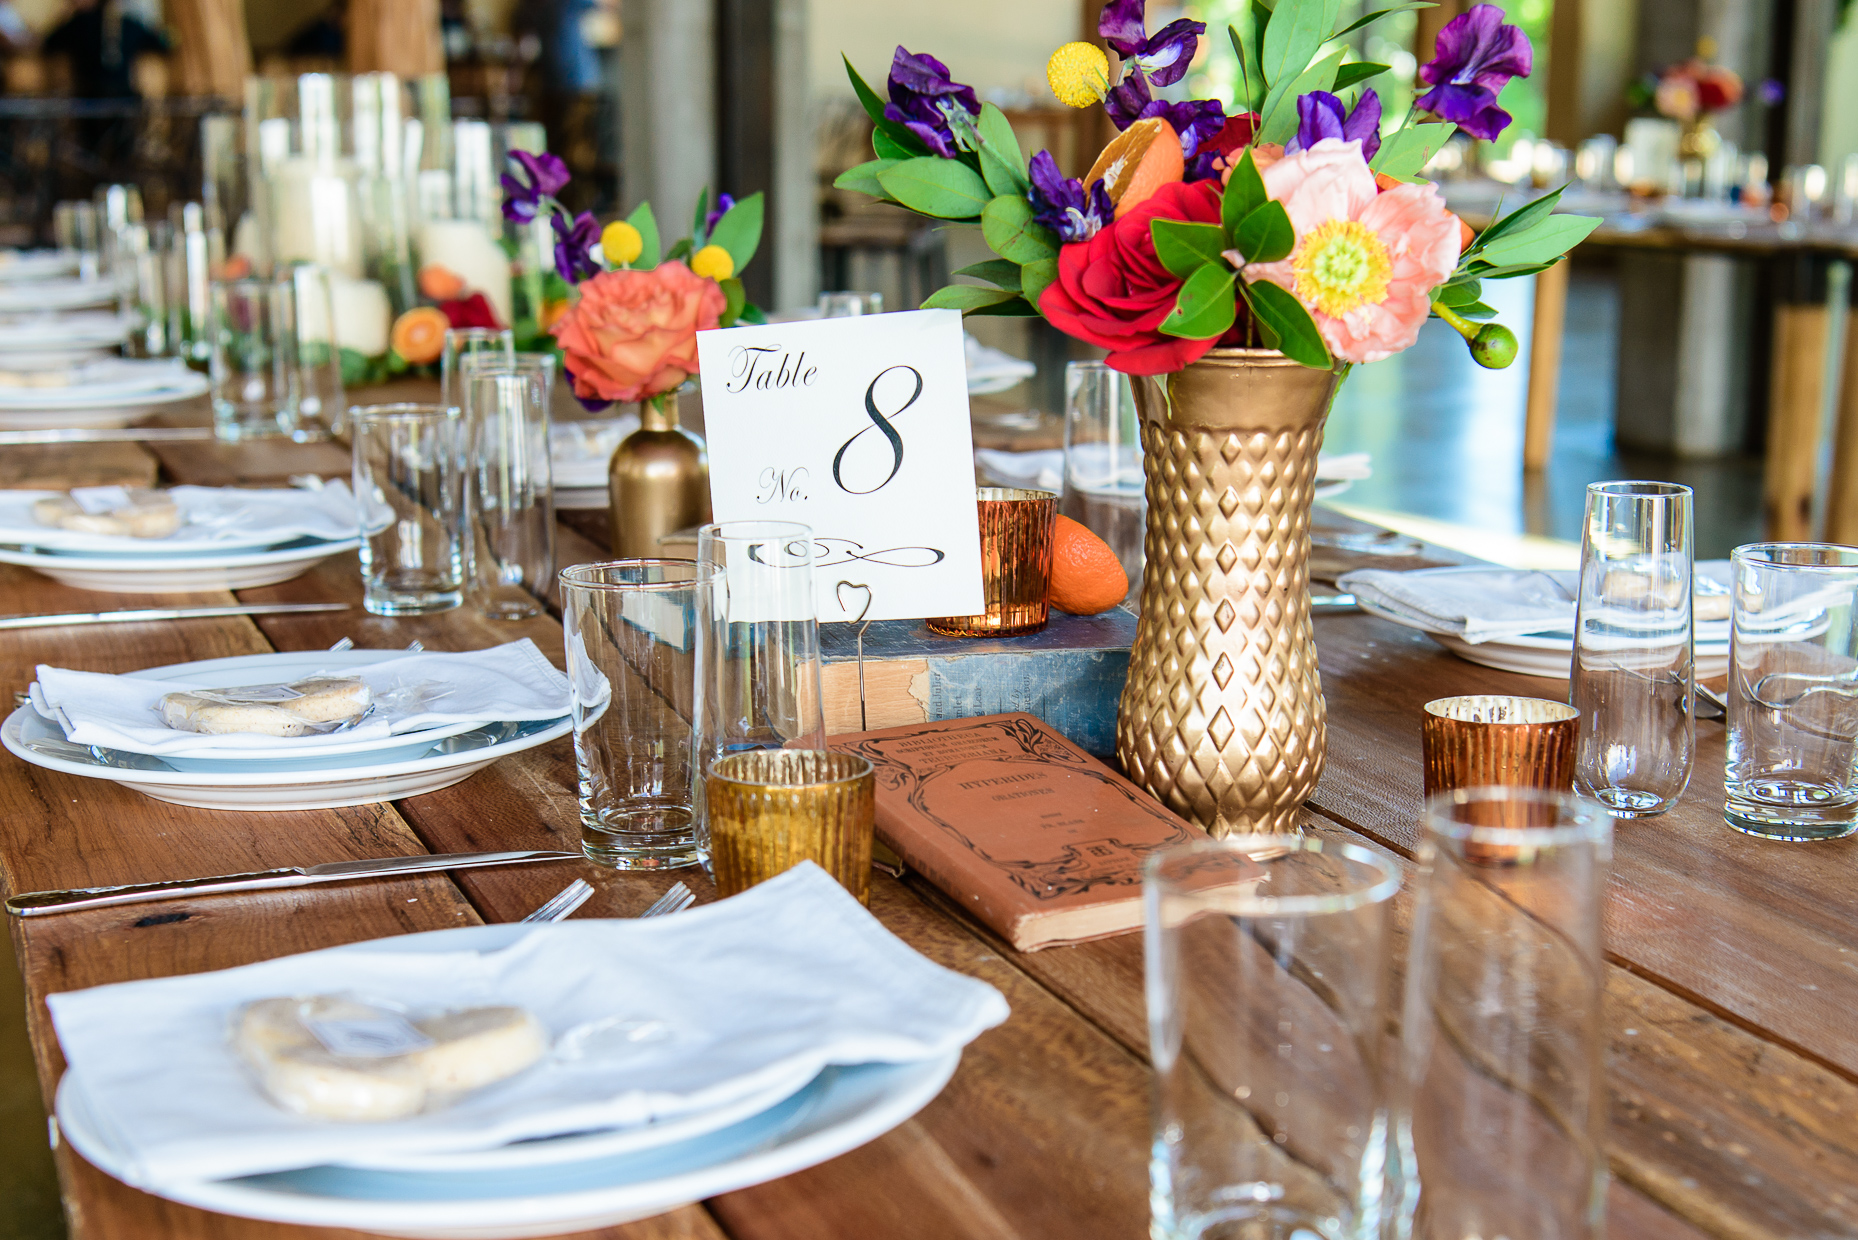 austin-Wedding-Photographers-table-setting-stems-floral-design